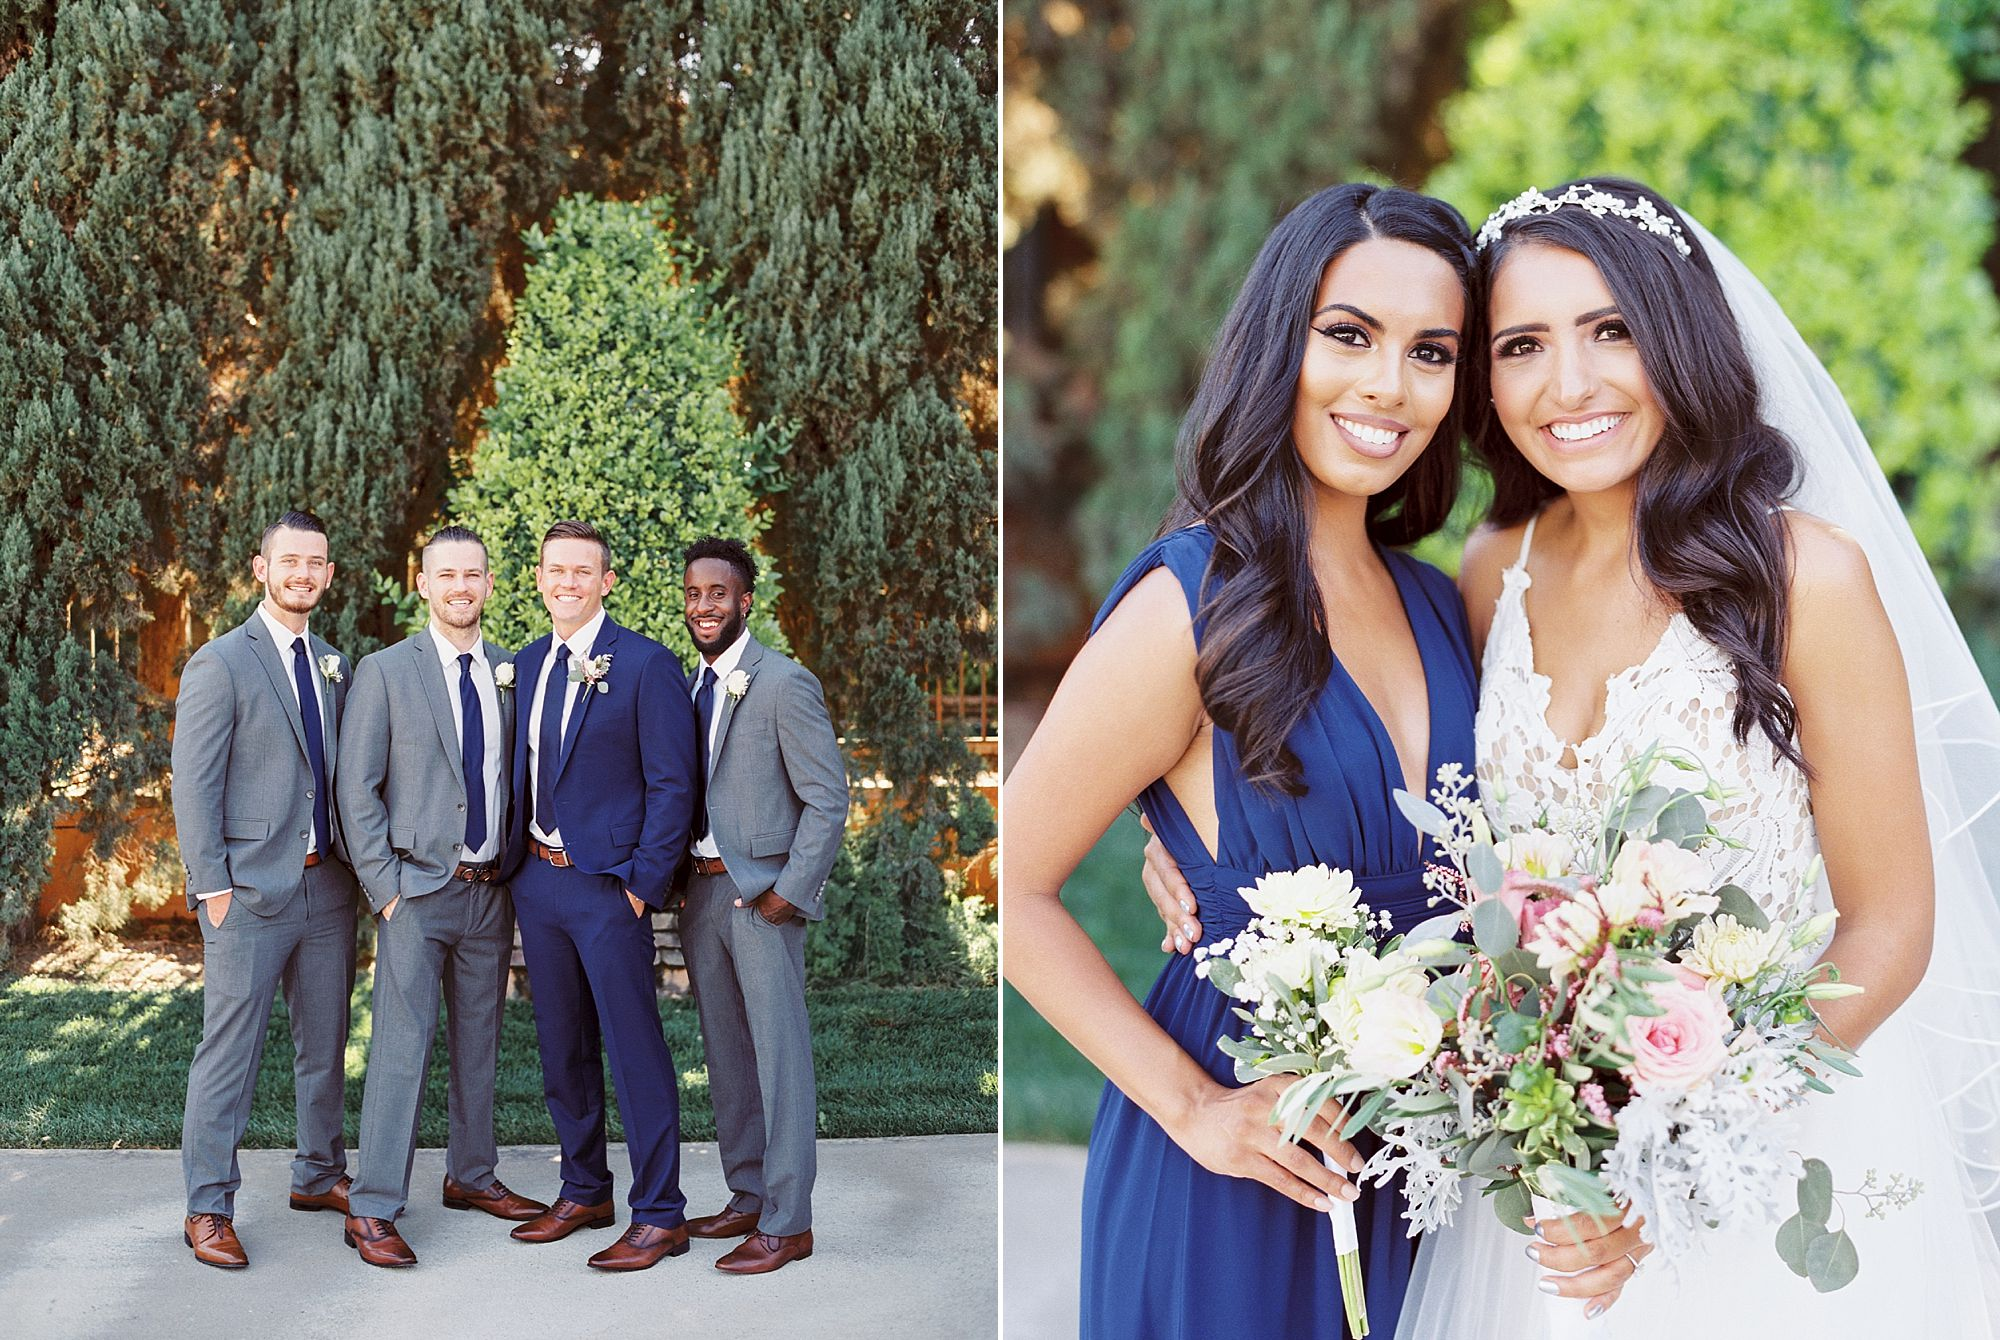 The River Mill Wedding Stockton - Ashley Baumgartner - Stockton Wedding Photographer - Sacramento Wedding Photography - Hybrid and Film Photographer - Sacramento Film Photographer_0021.jpg